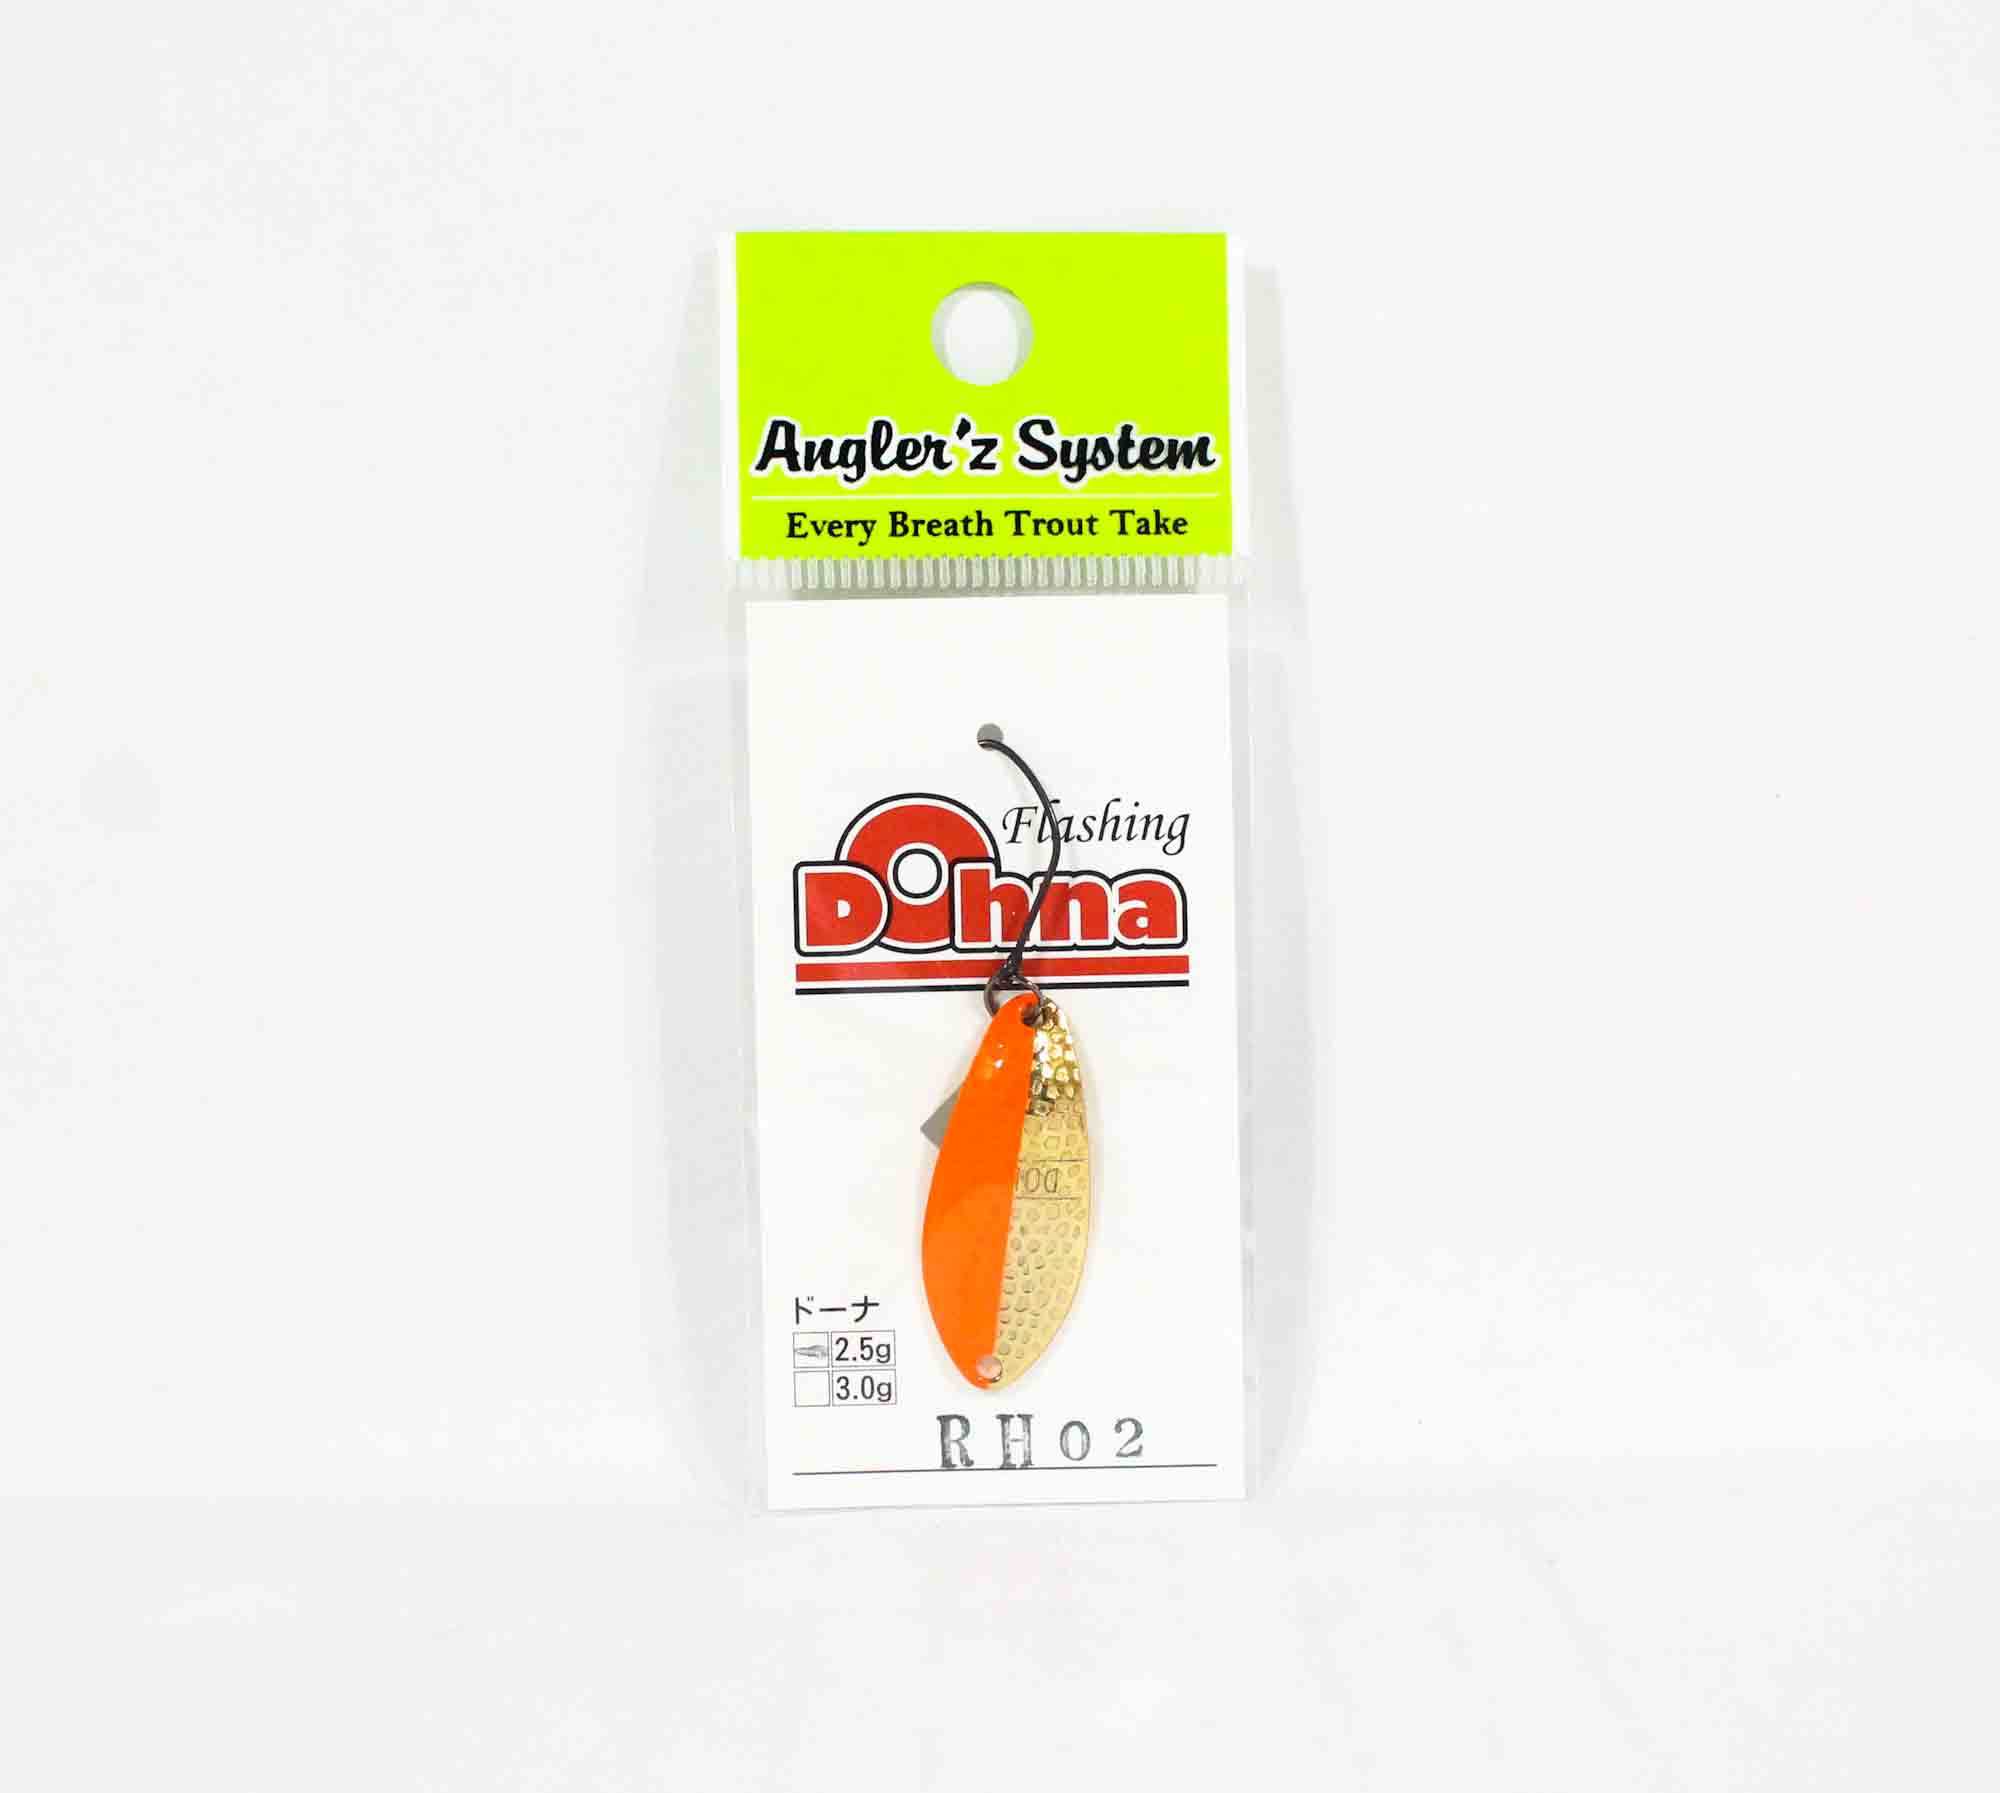 Anglers System Antem Dohna 2.5 grams Spoon Sinking Lure RH02 (5842)